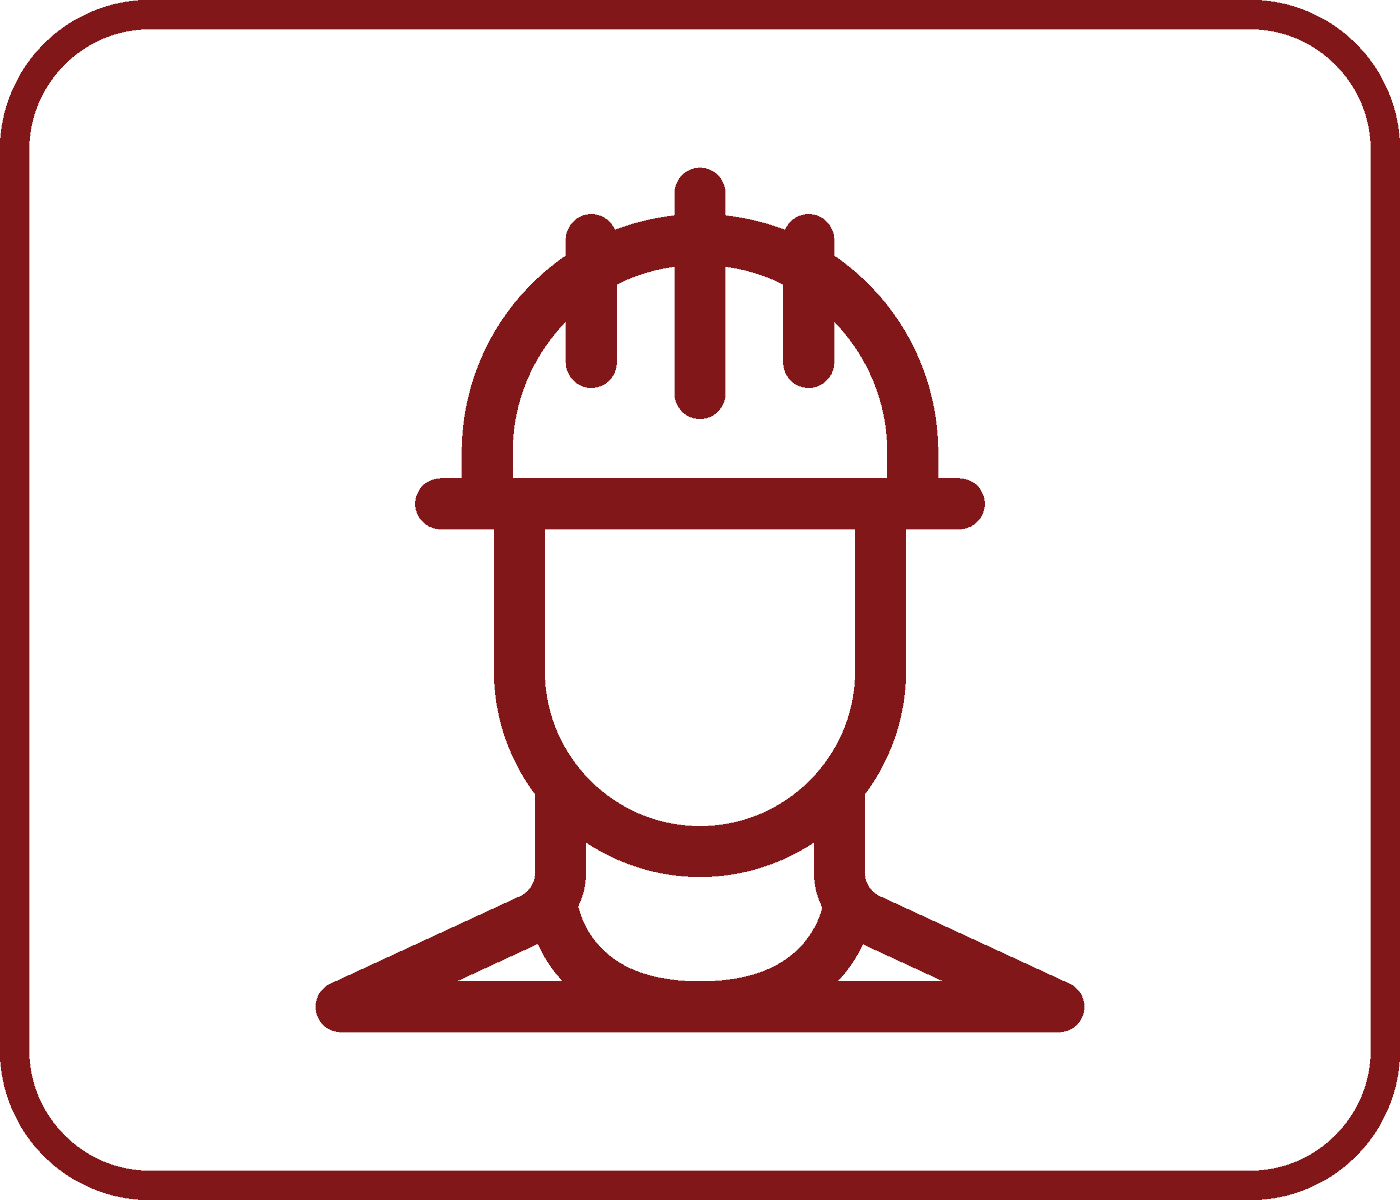 https://www.superiorfenceandrail.com/wp-content/uploads/2019/05/Employees.png